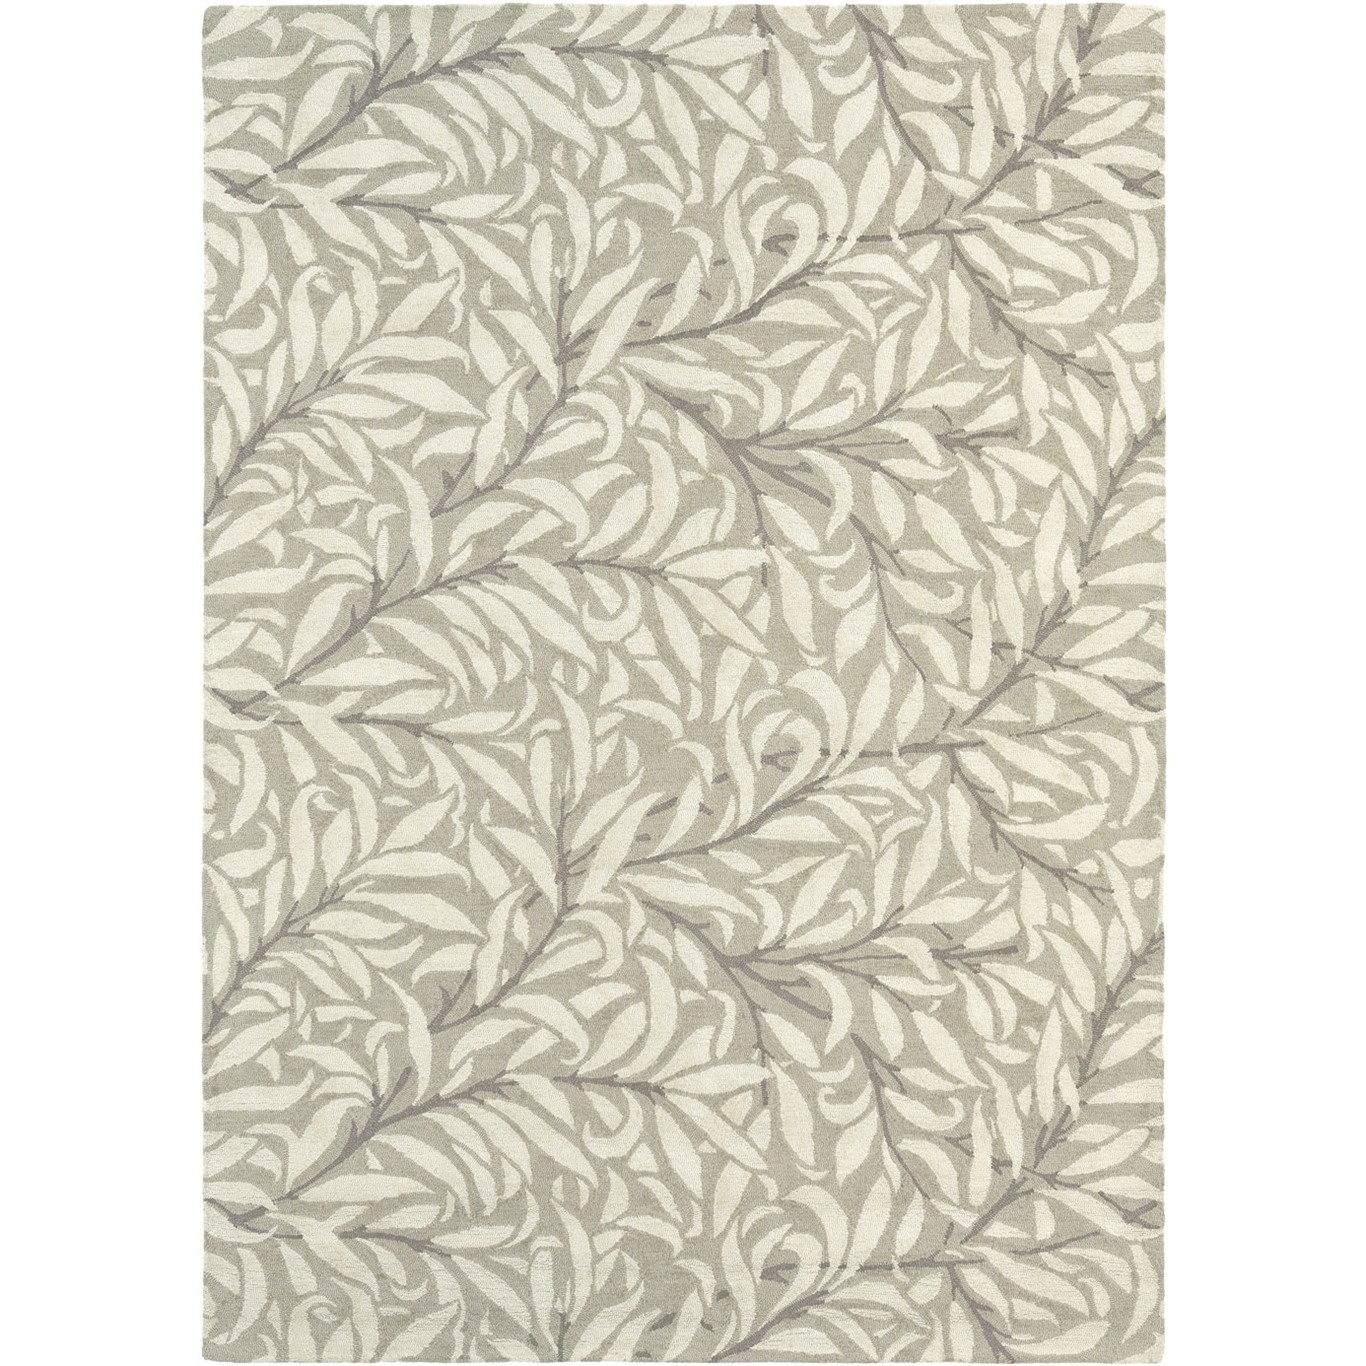 Image of Morris & Co Willow Bough Ivory Rug 28309